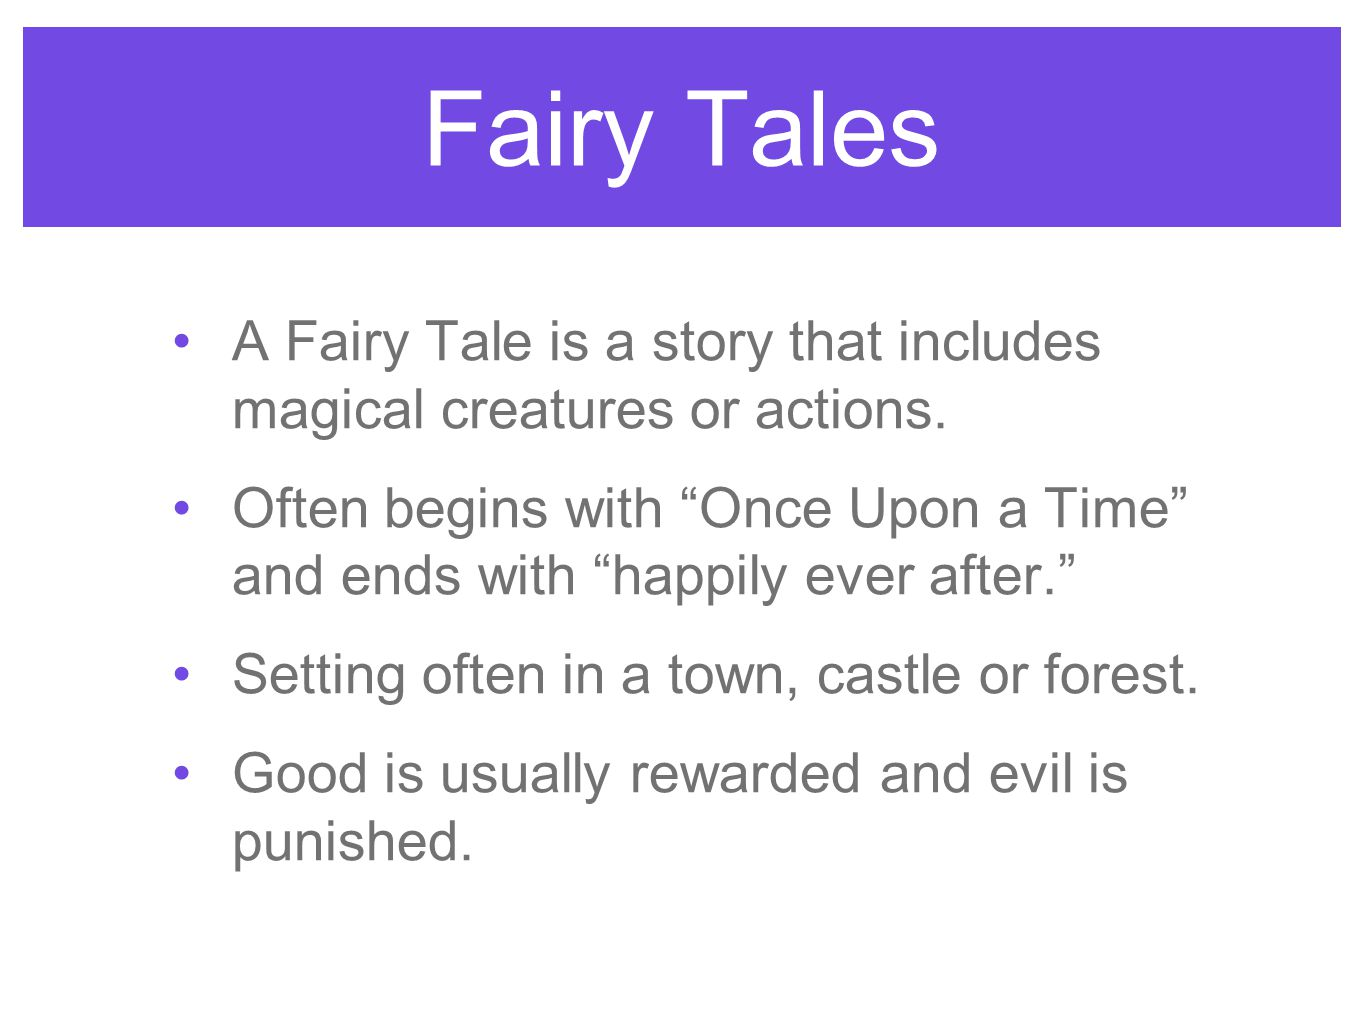 Fairy Tales A Fairy Tale is a story that includes magical creatures or actions.